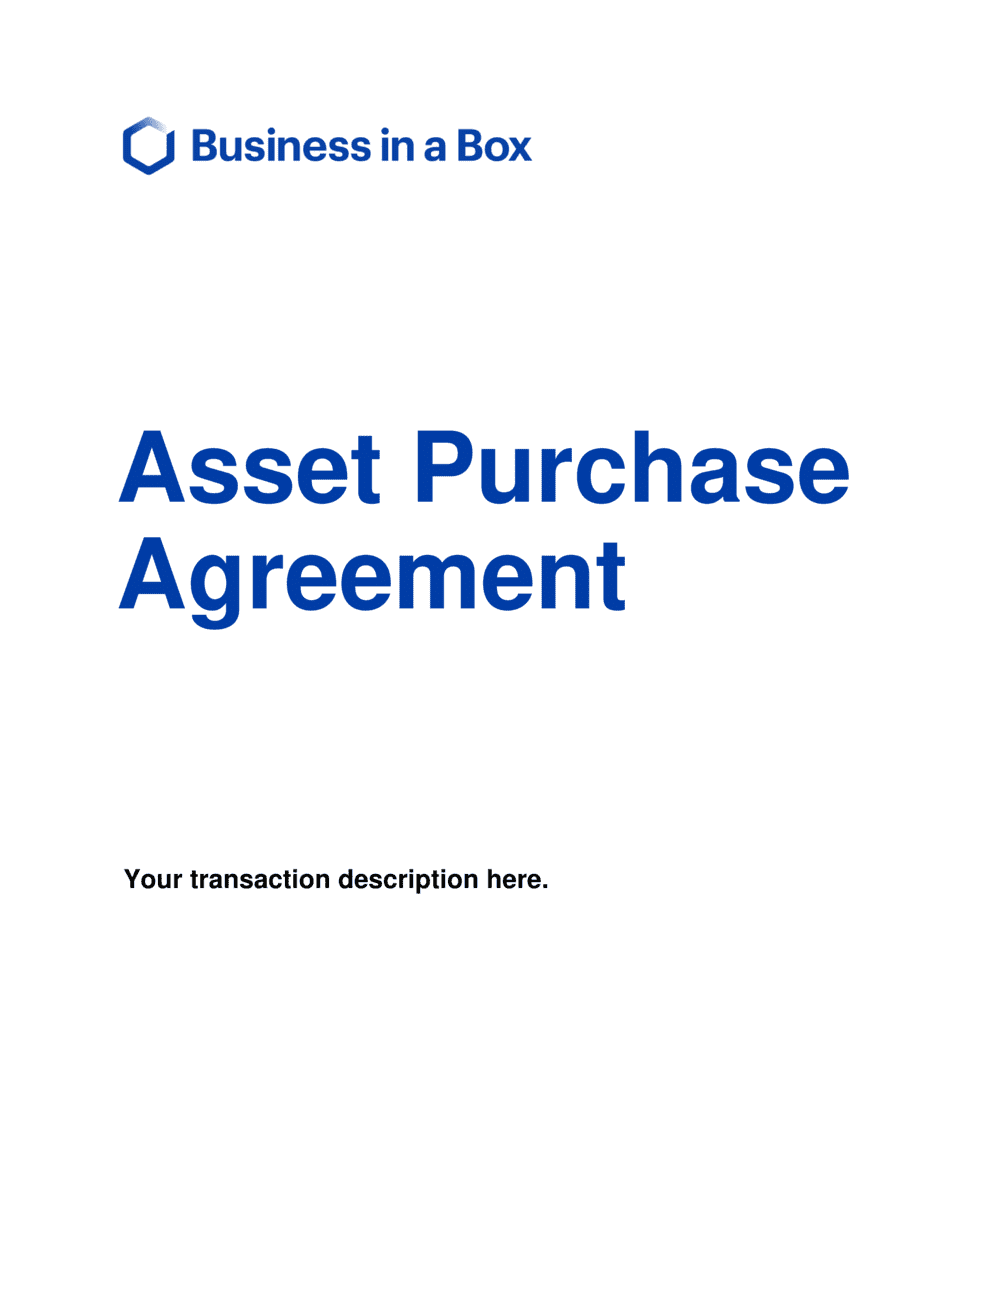 Business-in-a-Box's Purchase Agreement Short Version Template